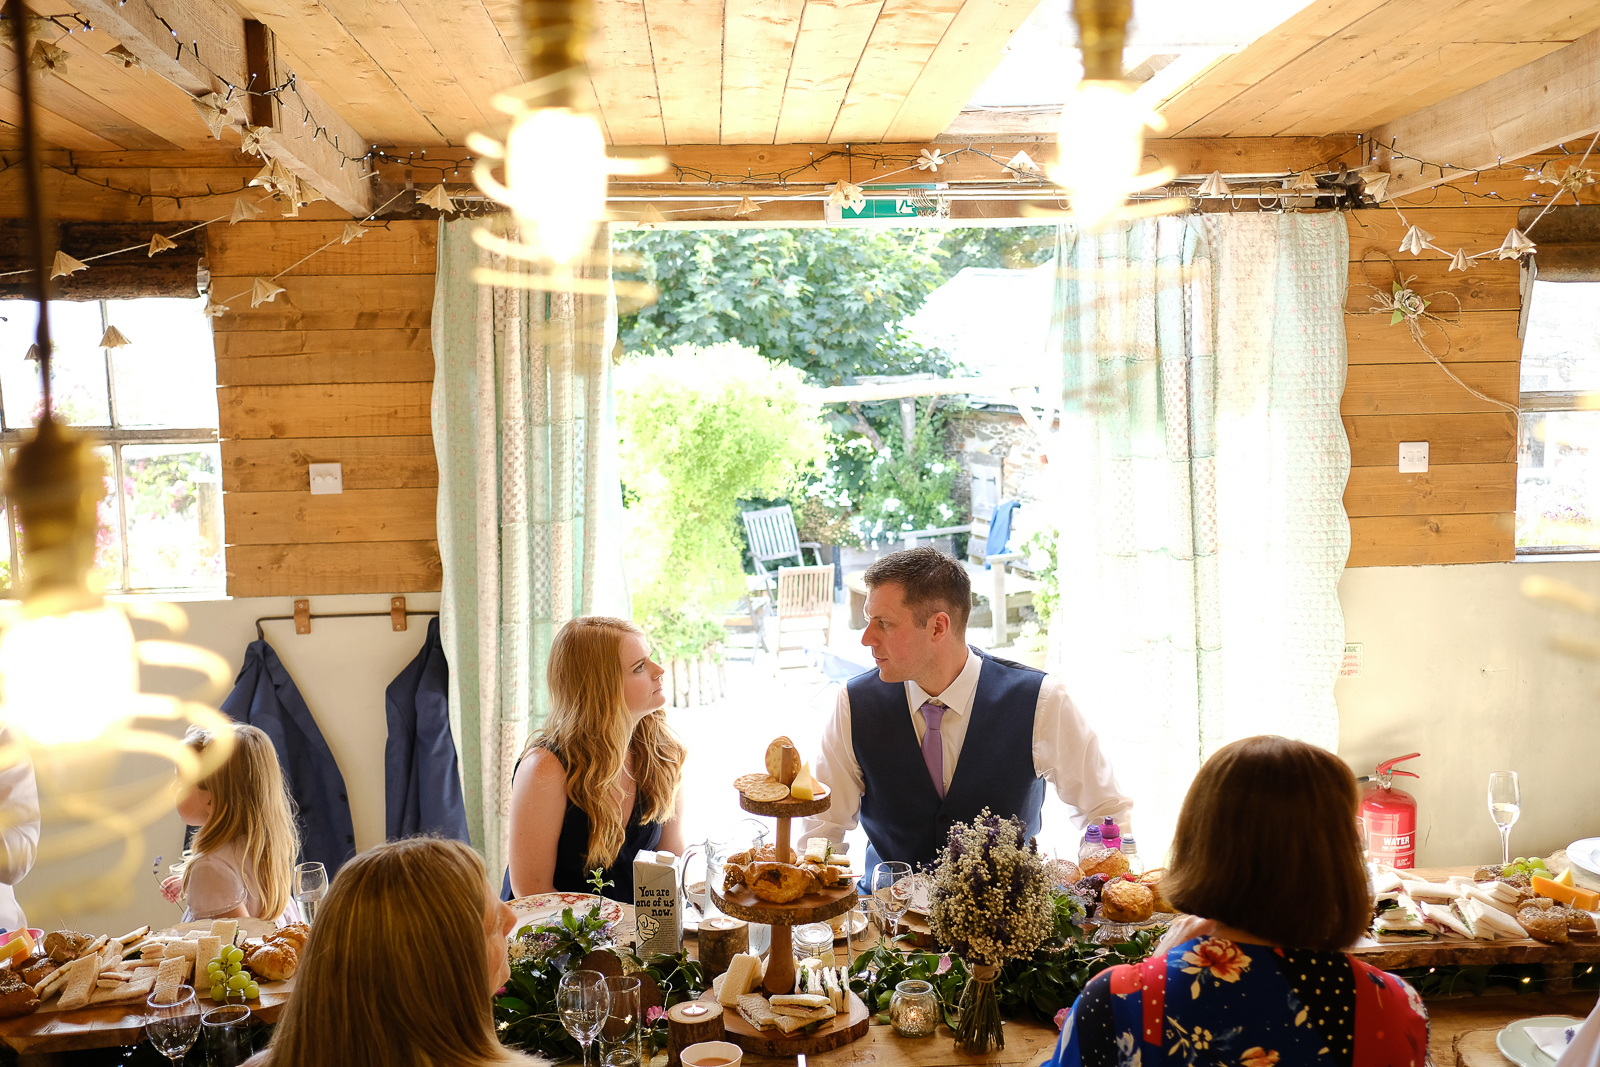 Rustic elopement at The Cow Shed in Cornwall 084.jpg